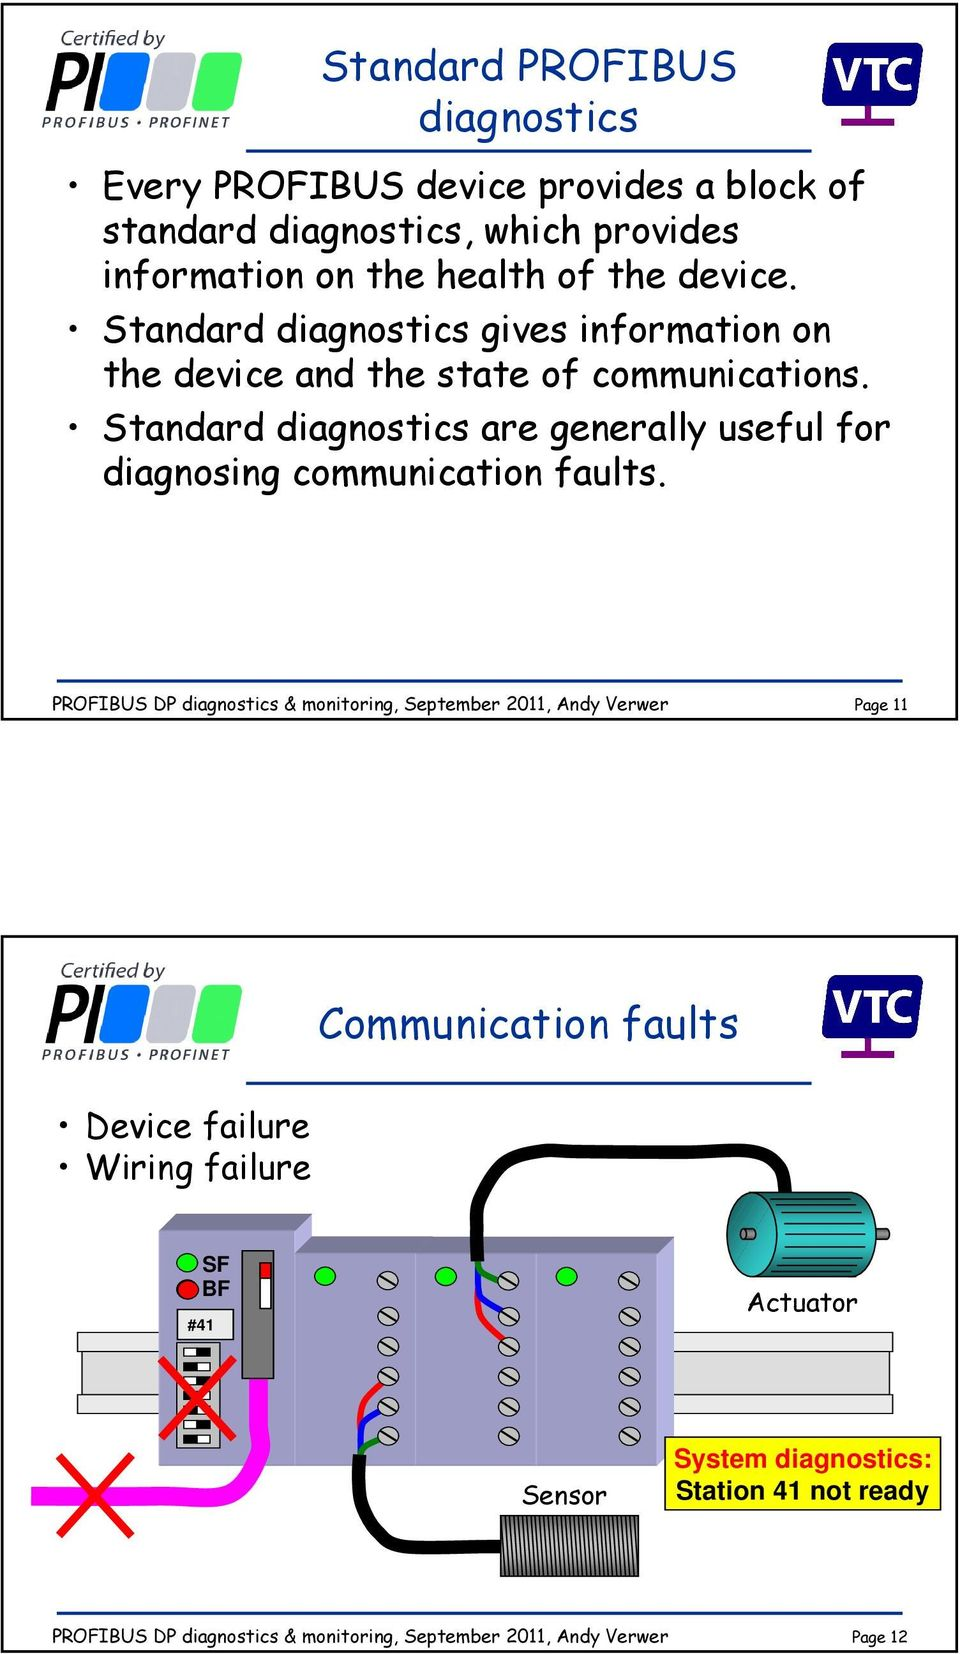 Standard diagnostics gives information on the device and the state of communications.